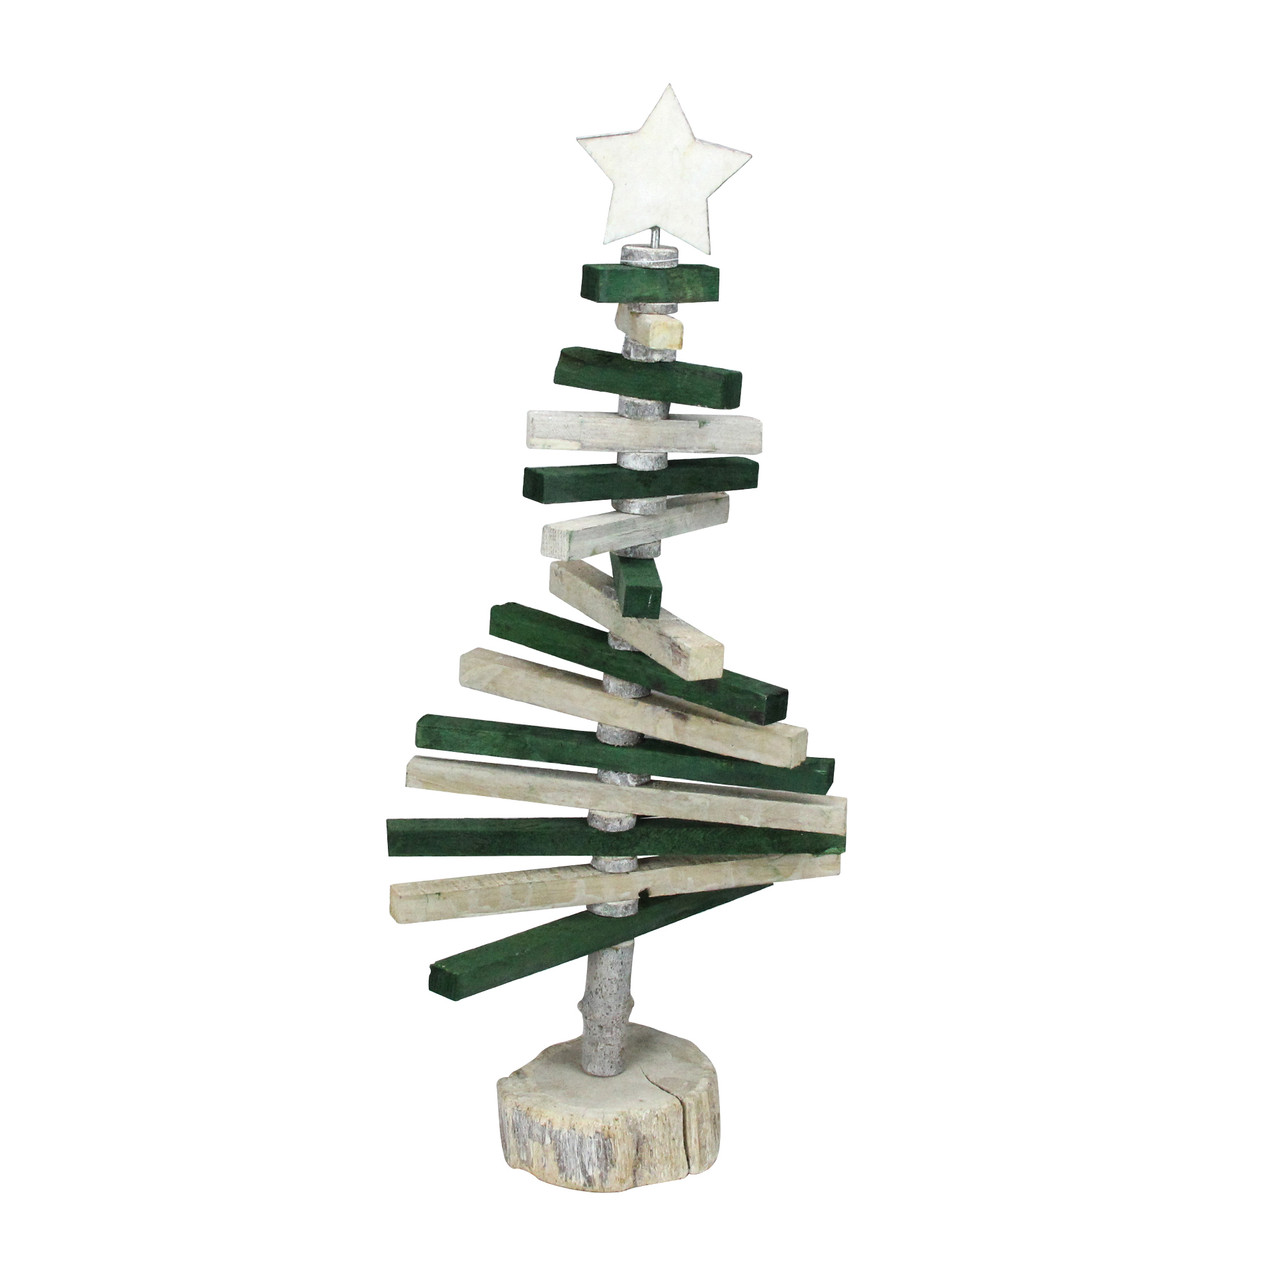 20 25 Green And Natural Wood Spiraled Table Top Christmas Tree 32913503